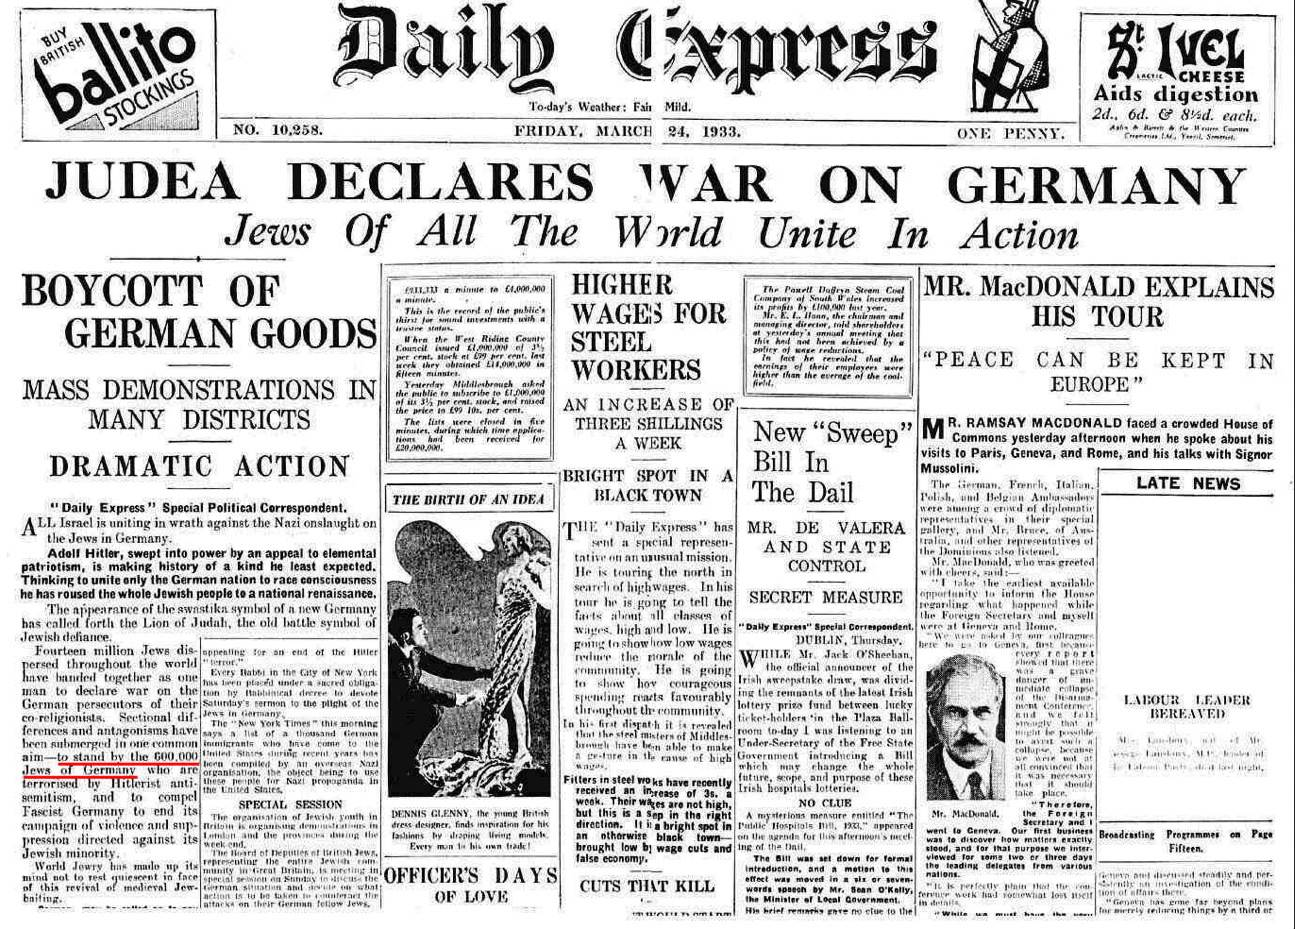 an analysis of the 1946 anglo american review about the plight of jews The anglo-american report of 1946 listed 608,000 jews in palestine according to the israel statistical abstract, there were 716,000 jews recorded in november 1948 and 758,000 recorded at the end of the year.